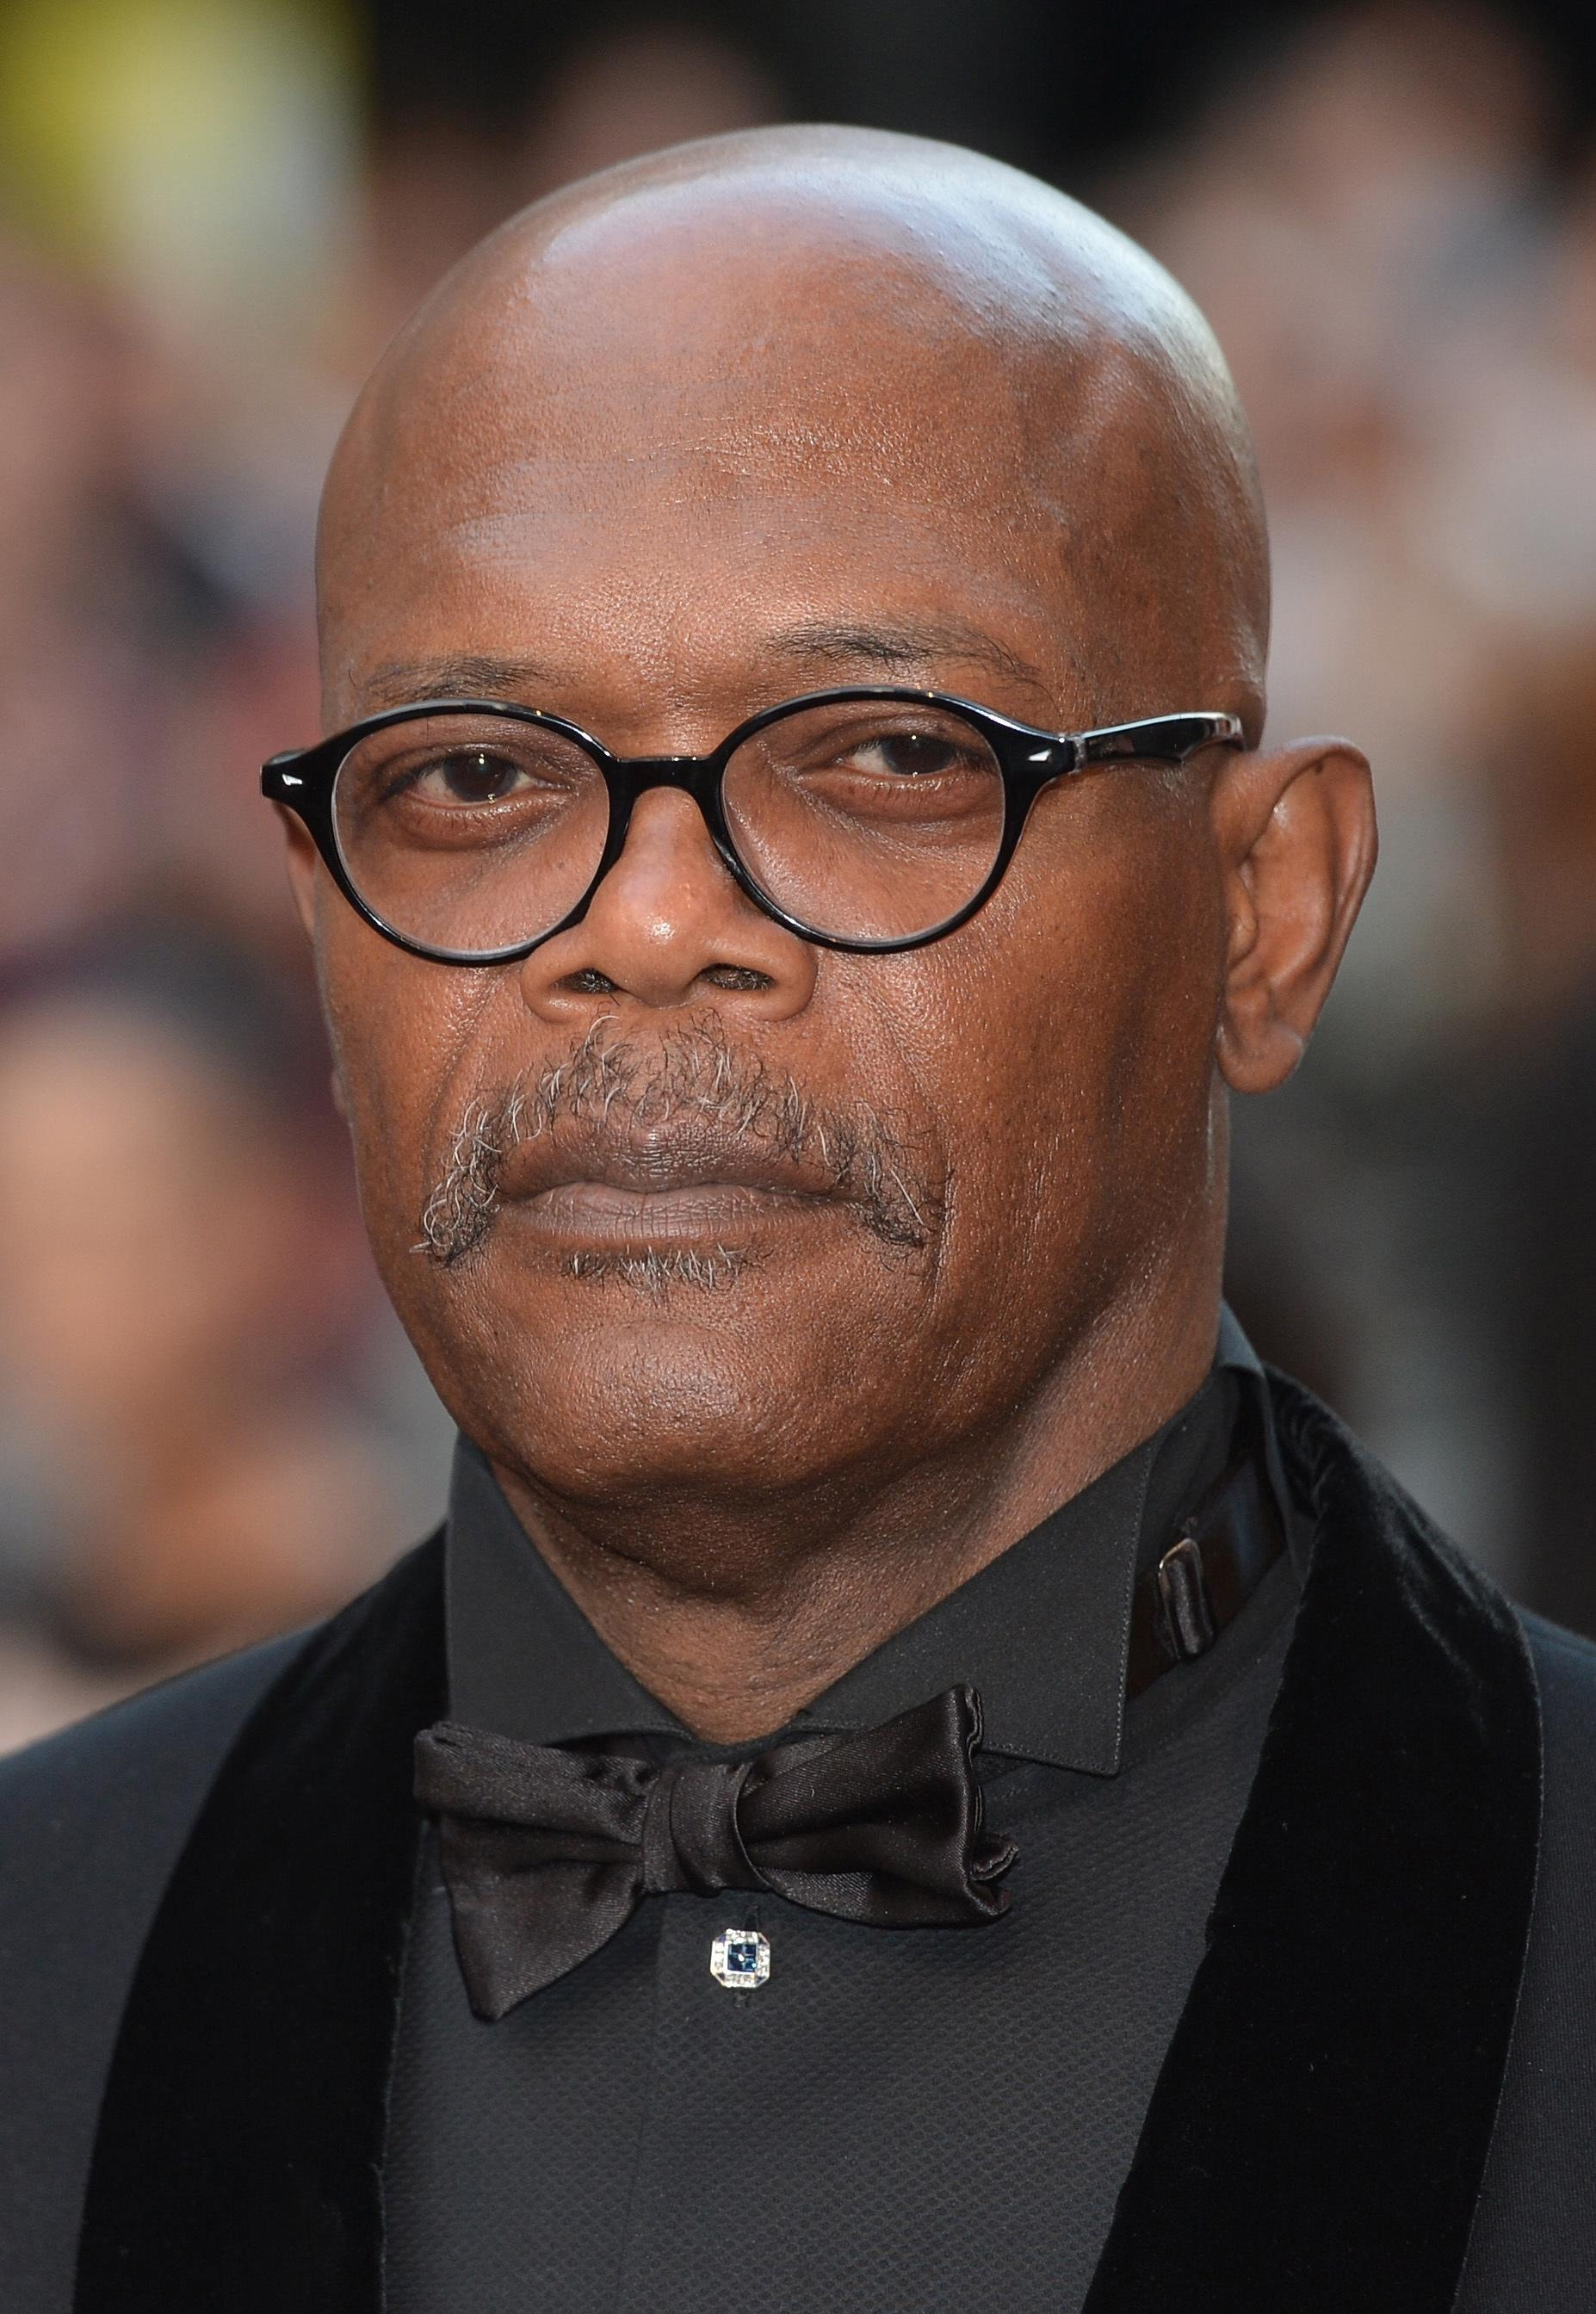 Samuel Jackson Full hd wallpapers